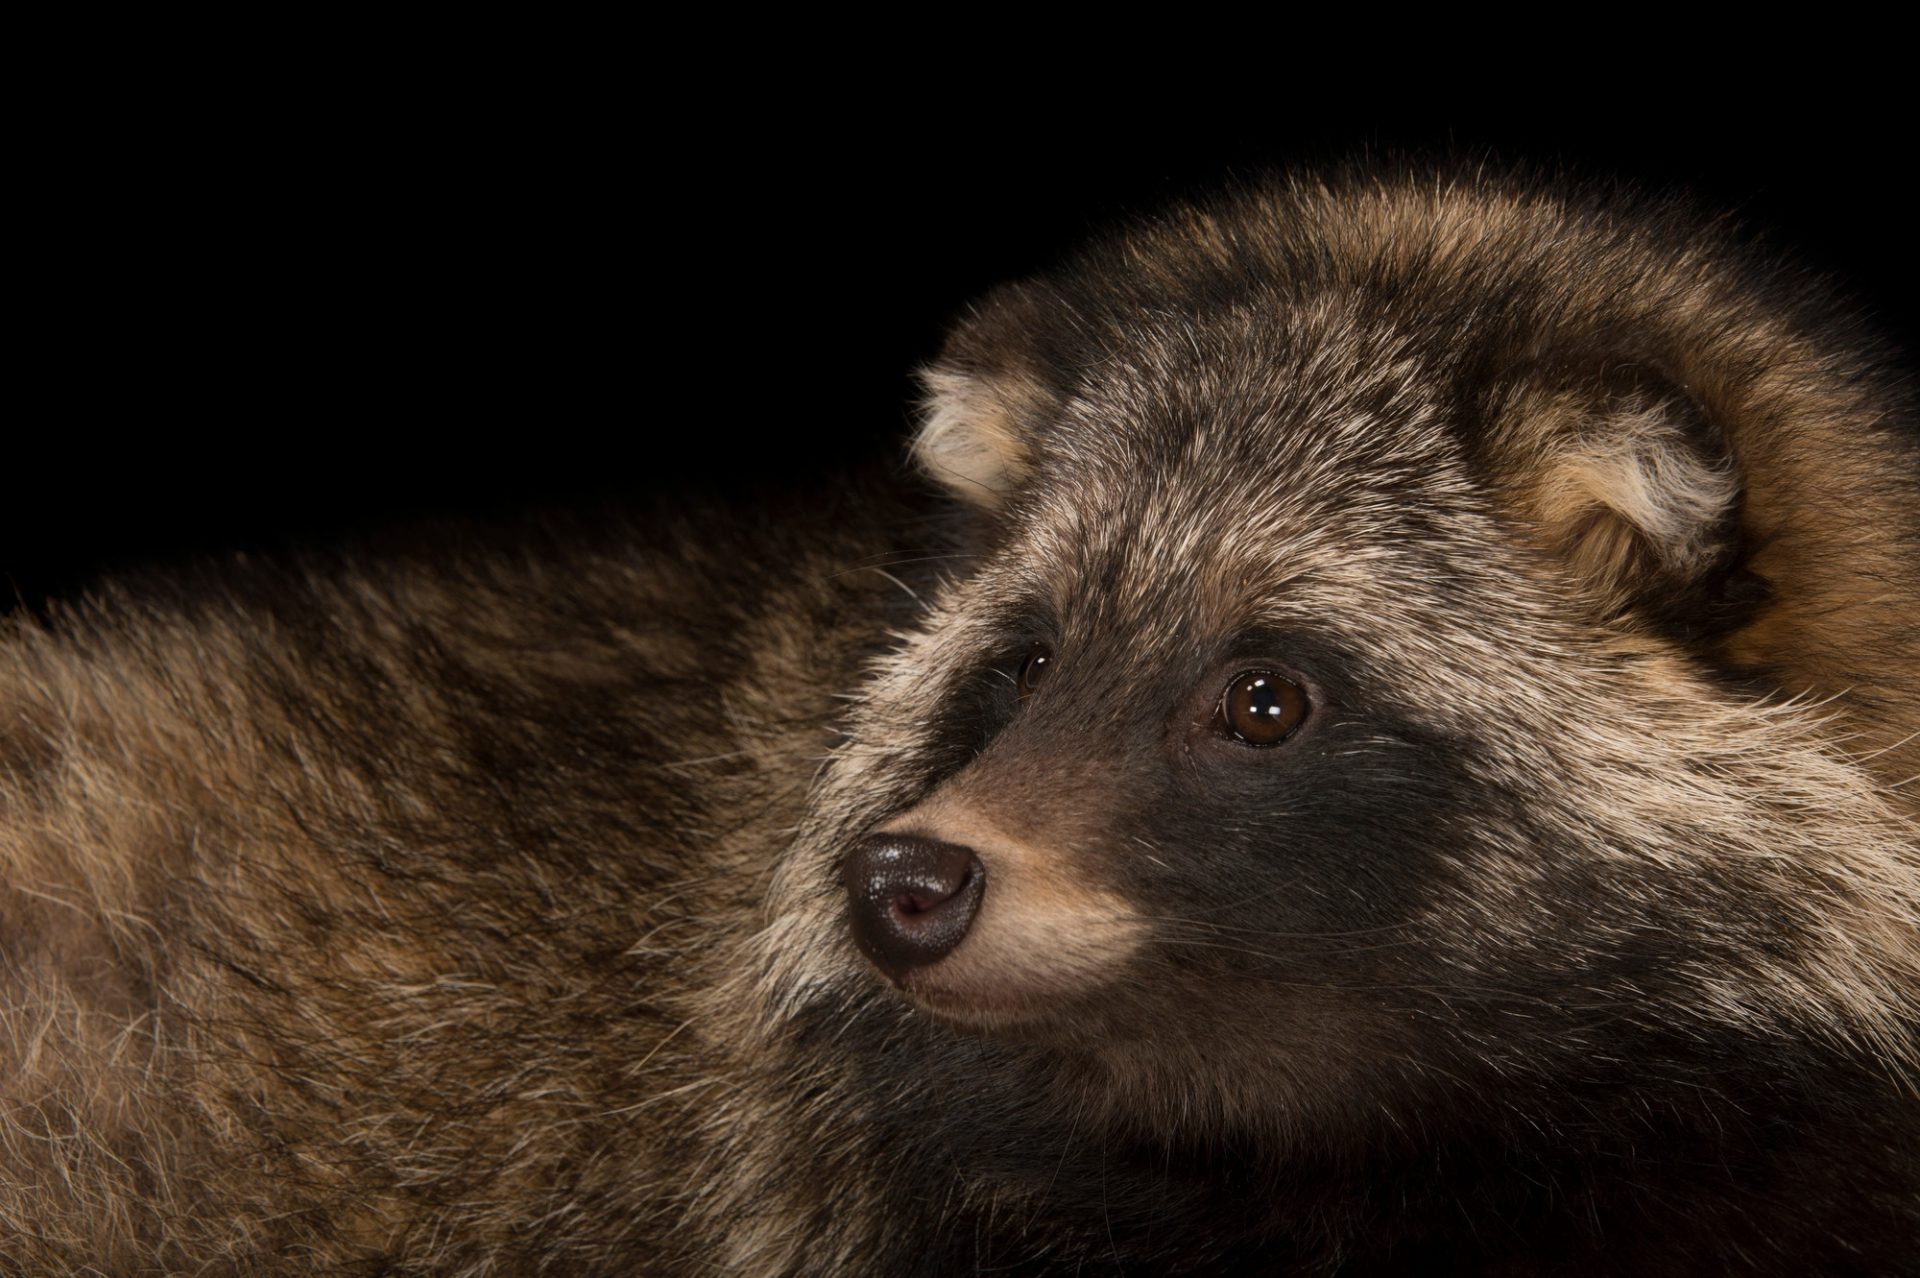 A raccoon dog (Nyctereutes procyonoides) named Thor at Zoo Atlanta. Engaging and curious but skittish, the raccoon dog was said to be a shape shifter according to ancient Japanese legend.